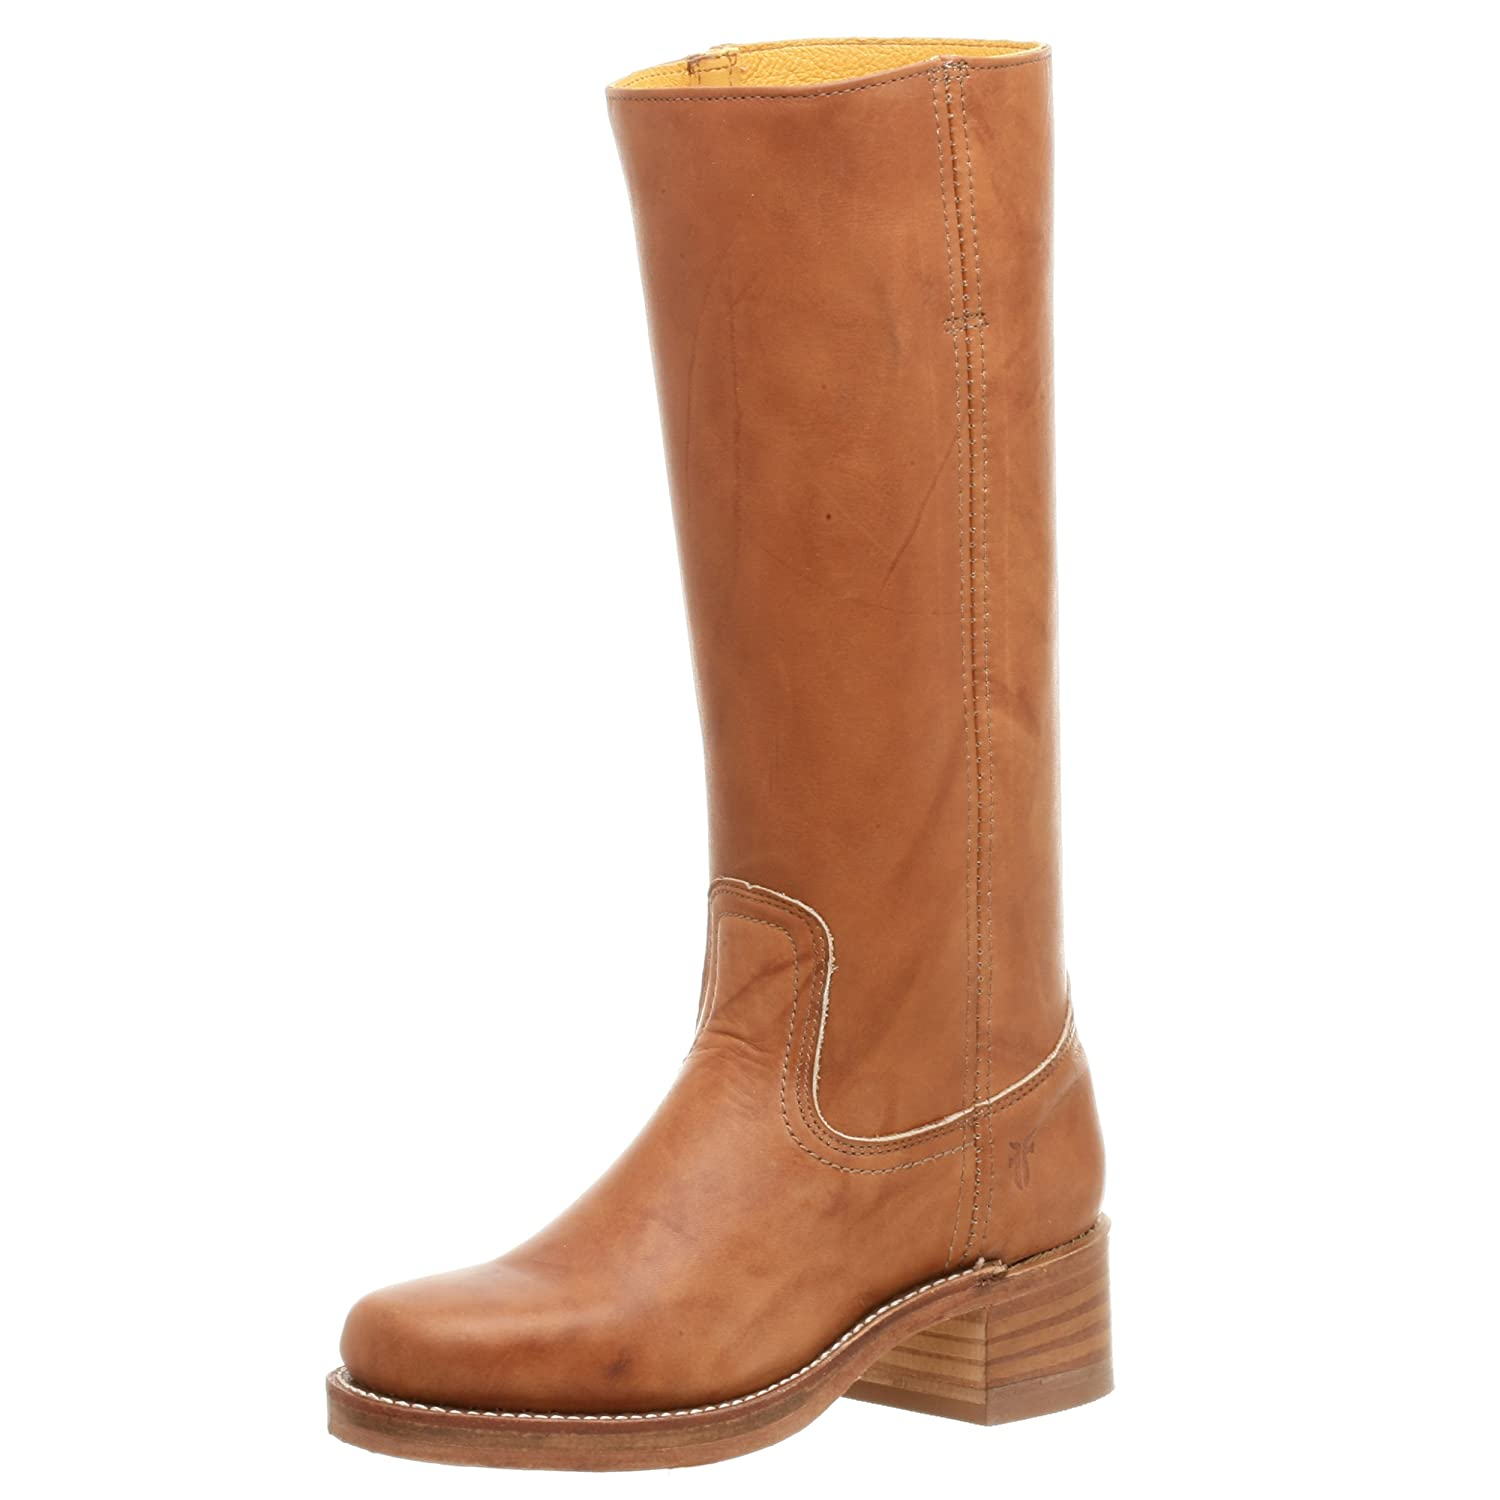 Endless.com: FRYE Women's Campus 14L Tall Boot: Women's Shoes